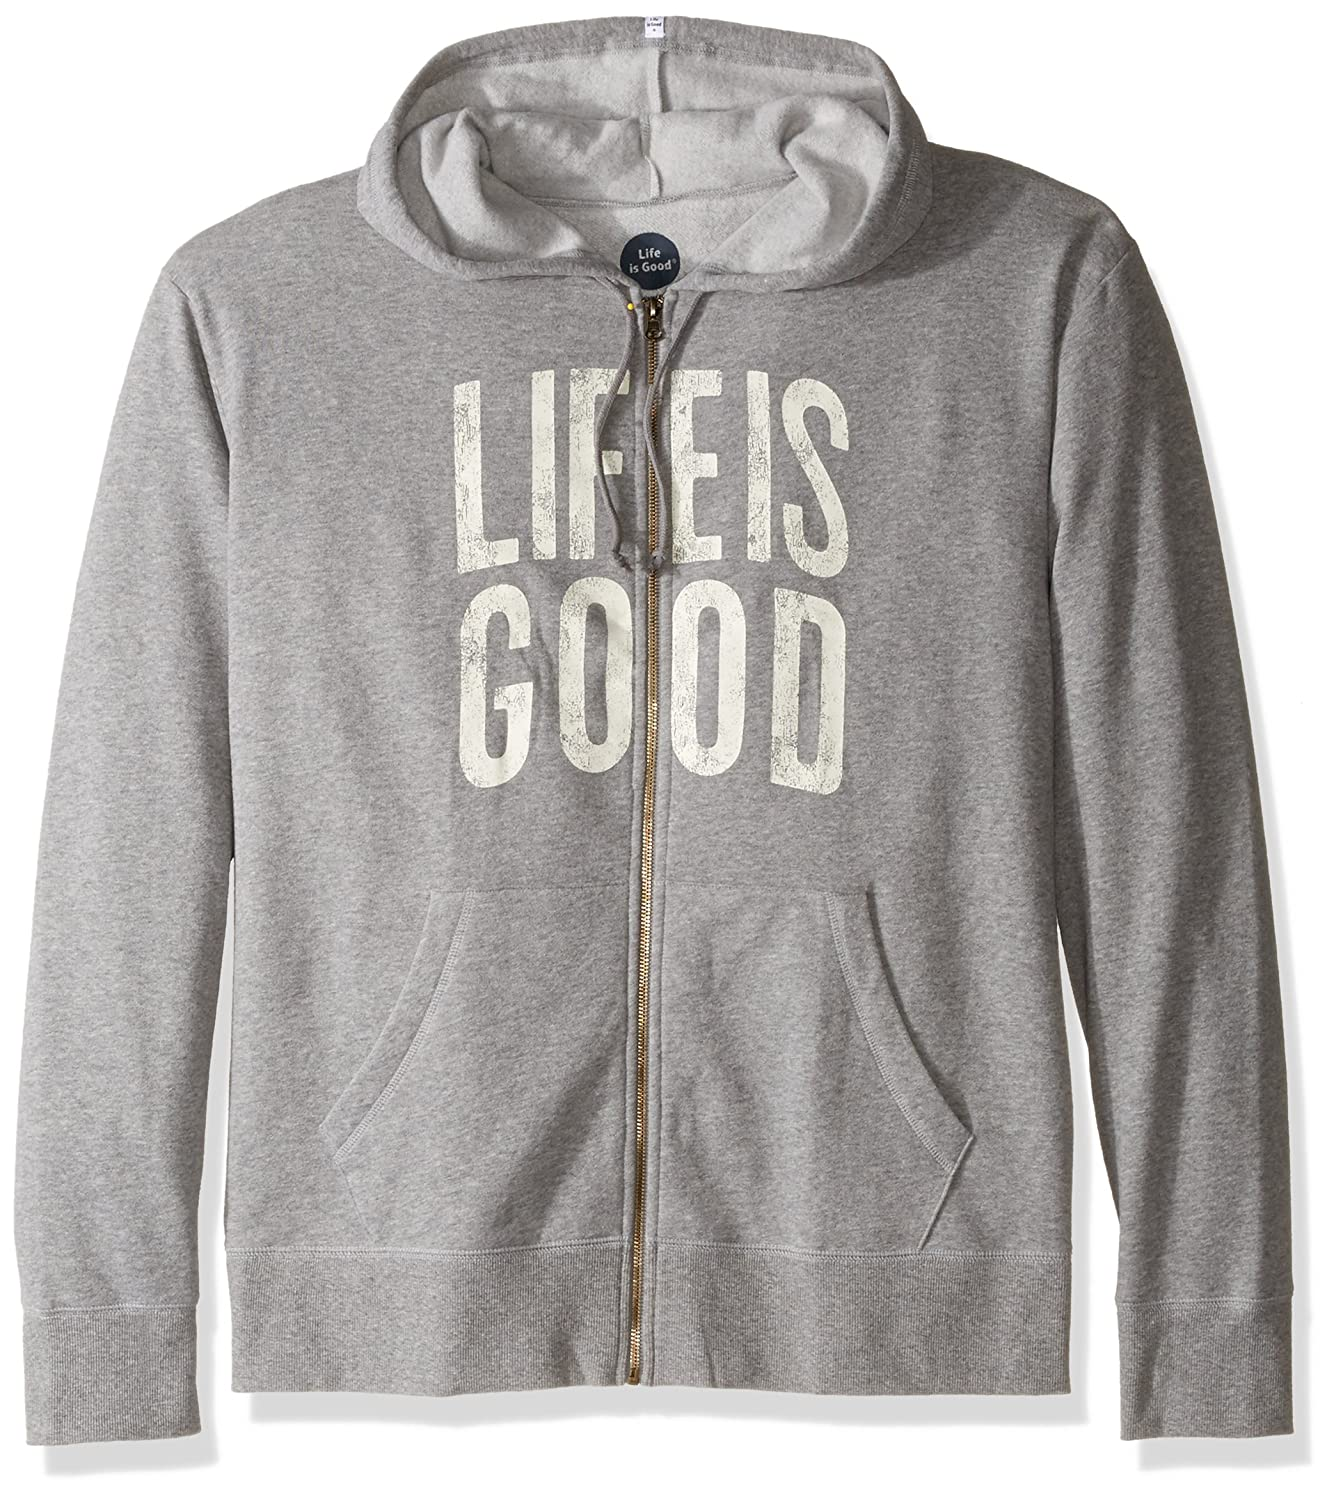 521a5c7cc0a Amazon.com  Life is Good Go-to Zip Hoodie